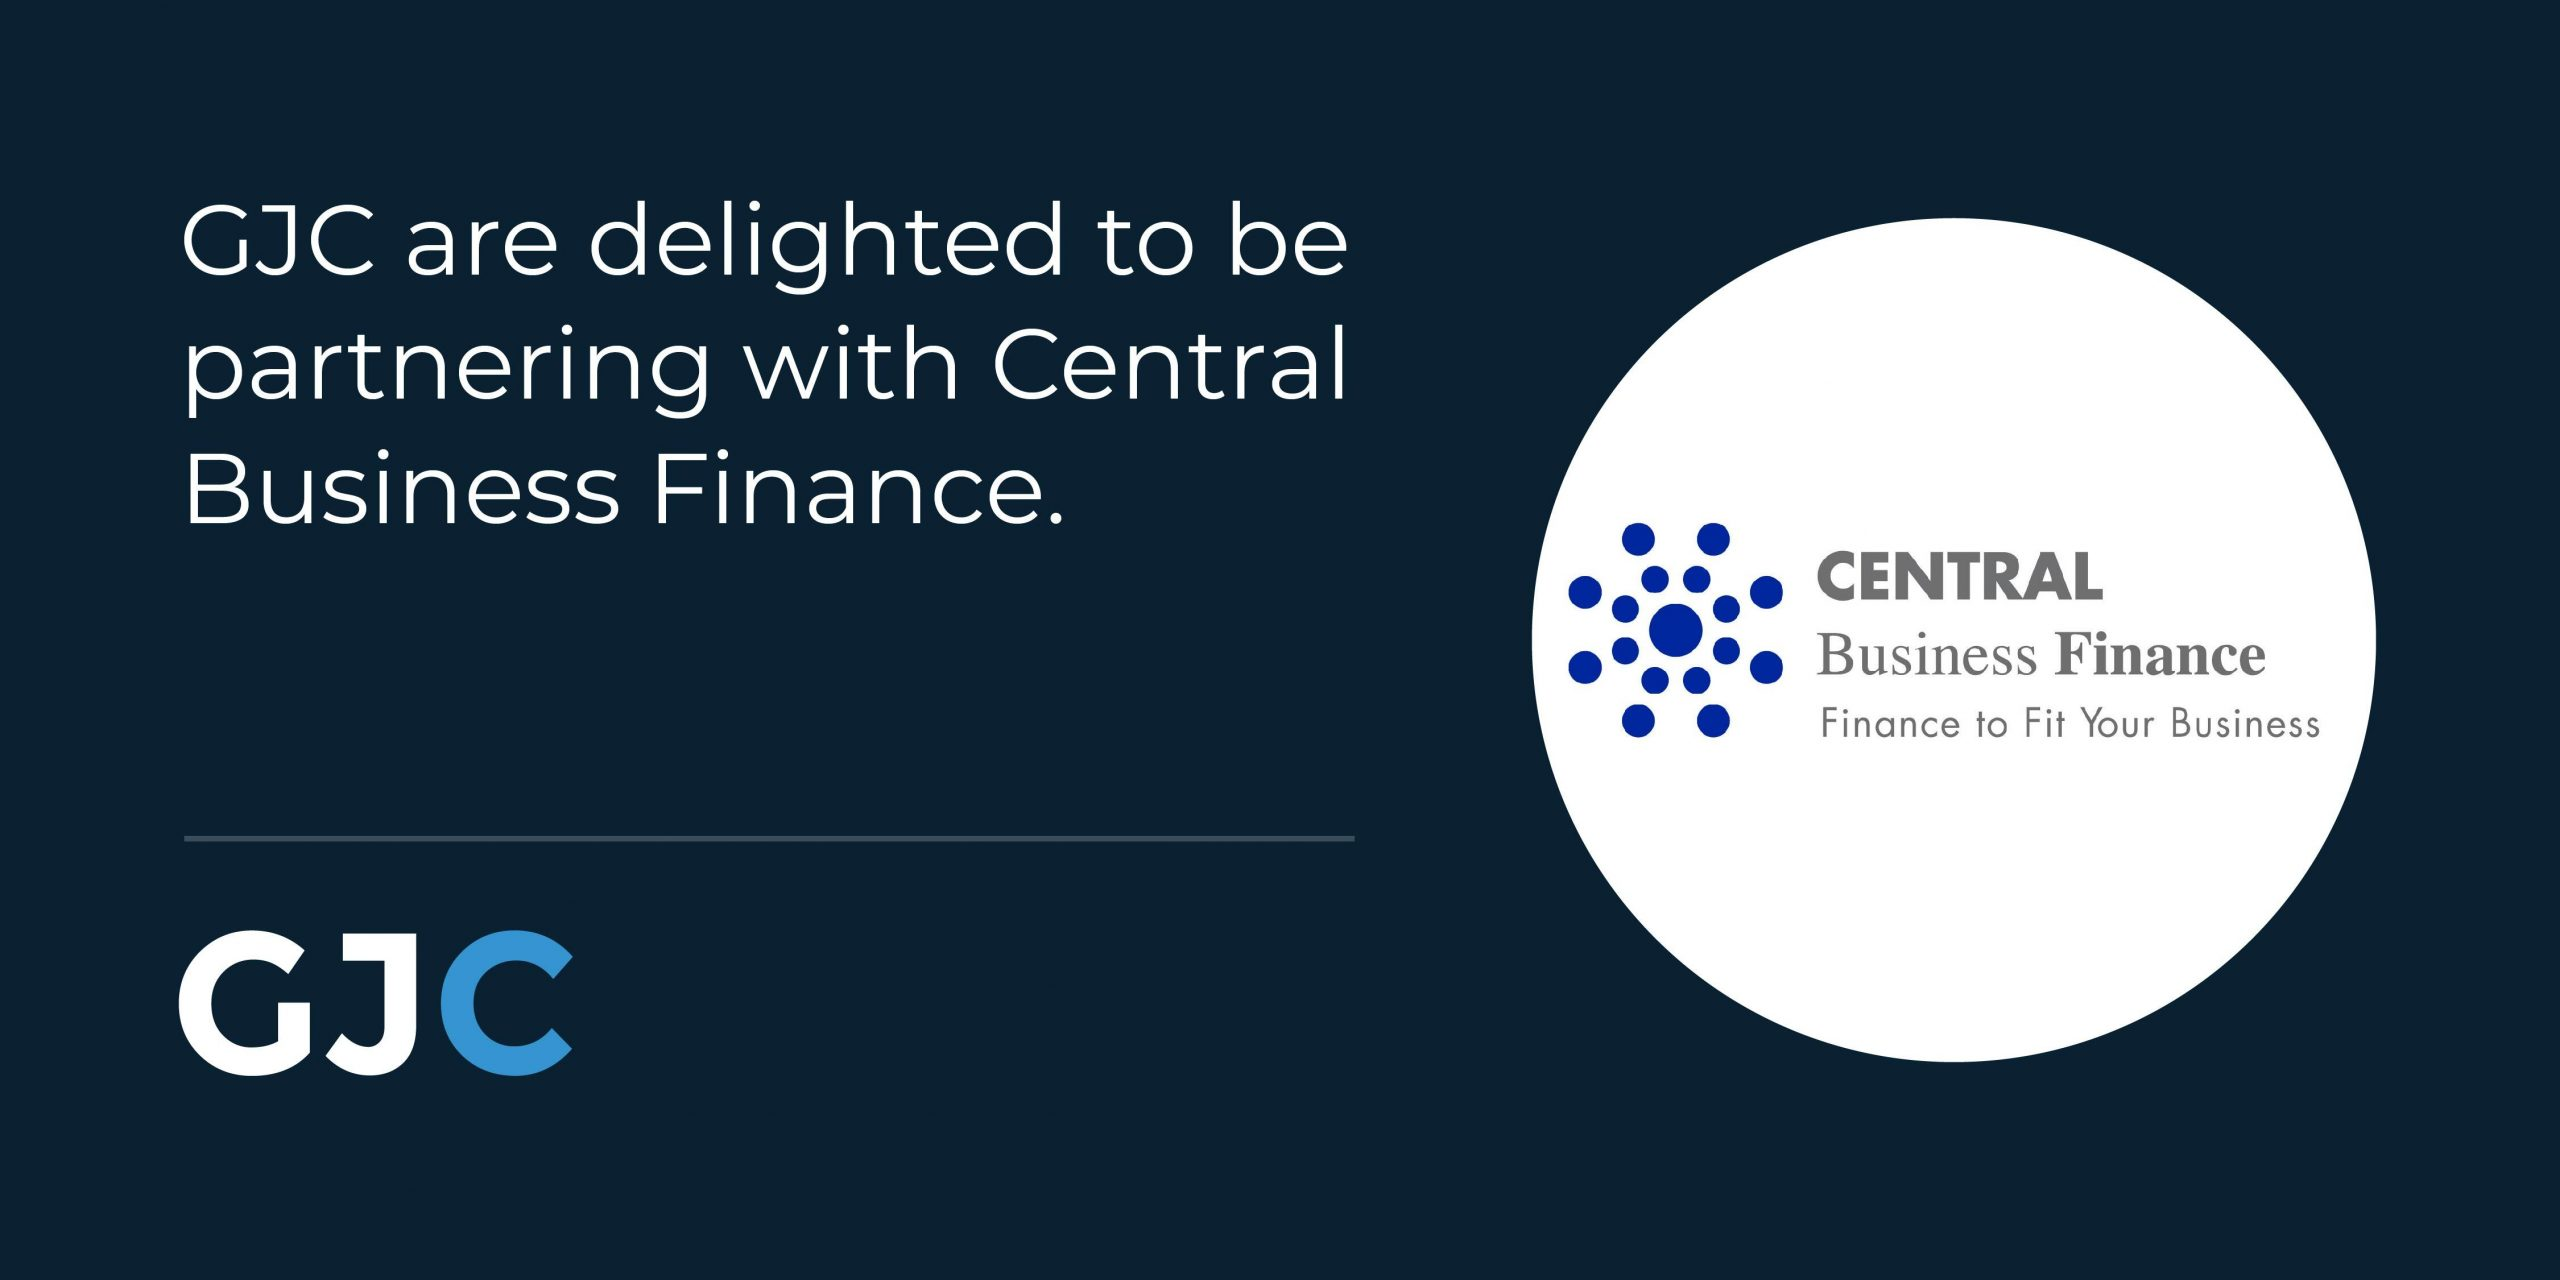 GJC are delighted to be partnering with Central Business Finance.